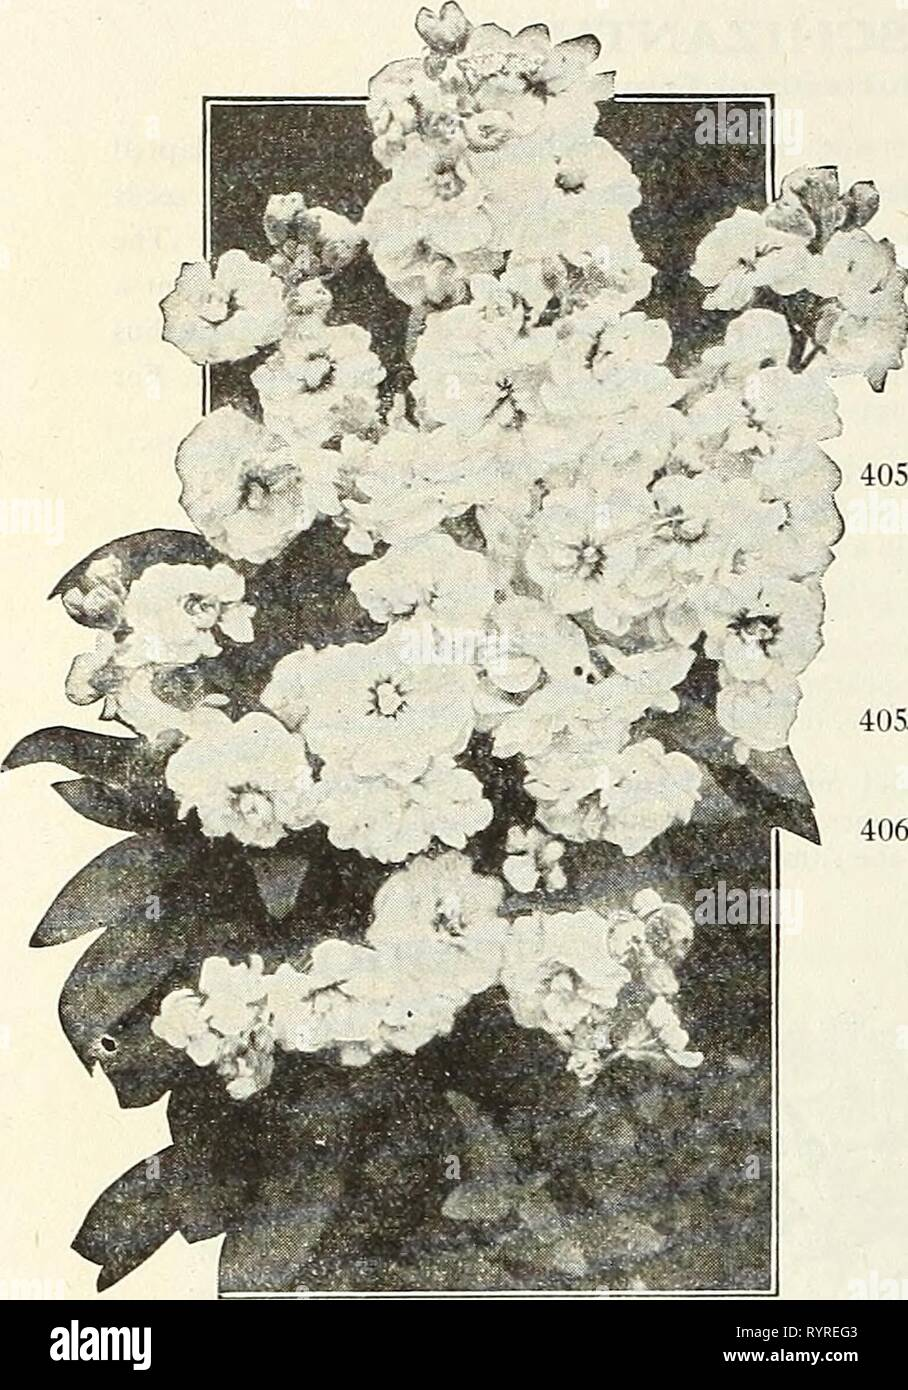 Dreer's mid-summer list 1923 (1923) Dreer's mid-summer list 1923 . dreersmidsummerl1923henr Year: 1923  18 HENRY A. DREER, PHILADELPHIA—FLOWER SEEDS    STATICE (Sea Lavender) Splendid hardy perennials, either for the border or rockery, producing all summer panicles of minute flowers, which can be dried and used for winter bouquets. PER PKT. 3997 Latifolia. Purplish-blue flowers SO 10 4000 Mixed. Containing many sorts. 10 STOKESIA (Cornflower Aster) ) 4051 Cyanea. This is not new, but is a rare and beautiful hardy perennial.  The plant grows about 24 inches high, each bearing from 20 to 30 han - Stock Image